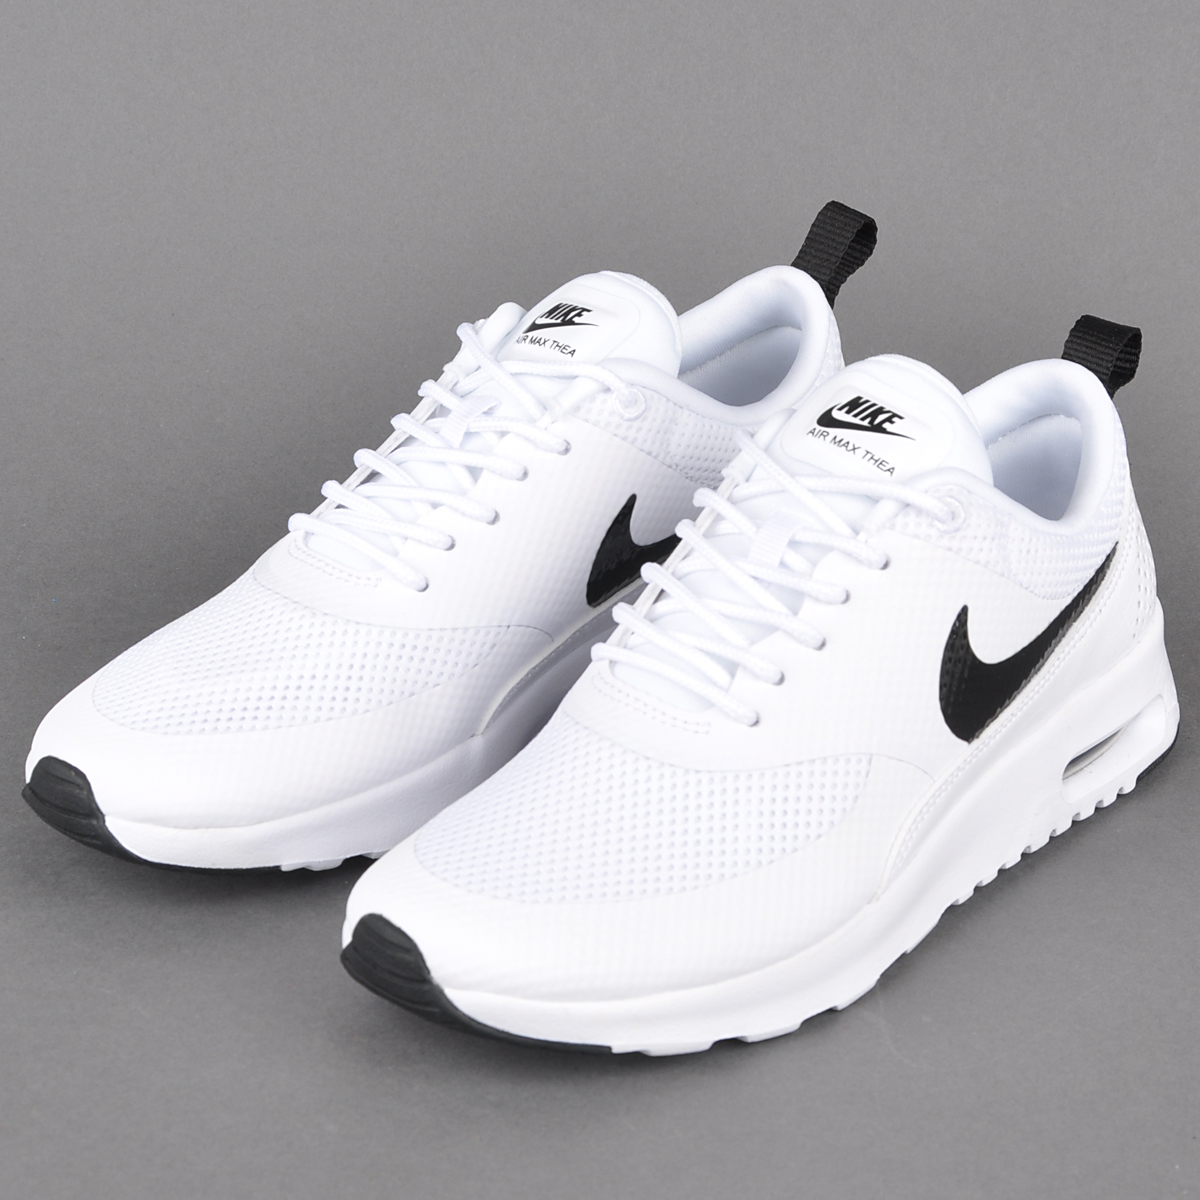 Nike Air Max Thea Textile Womens 819639 005 Black Grey Running